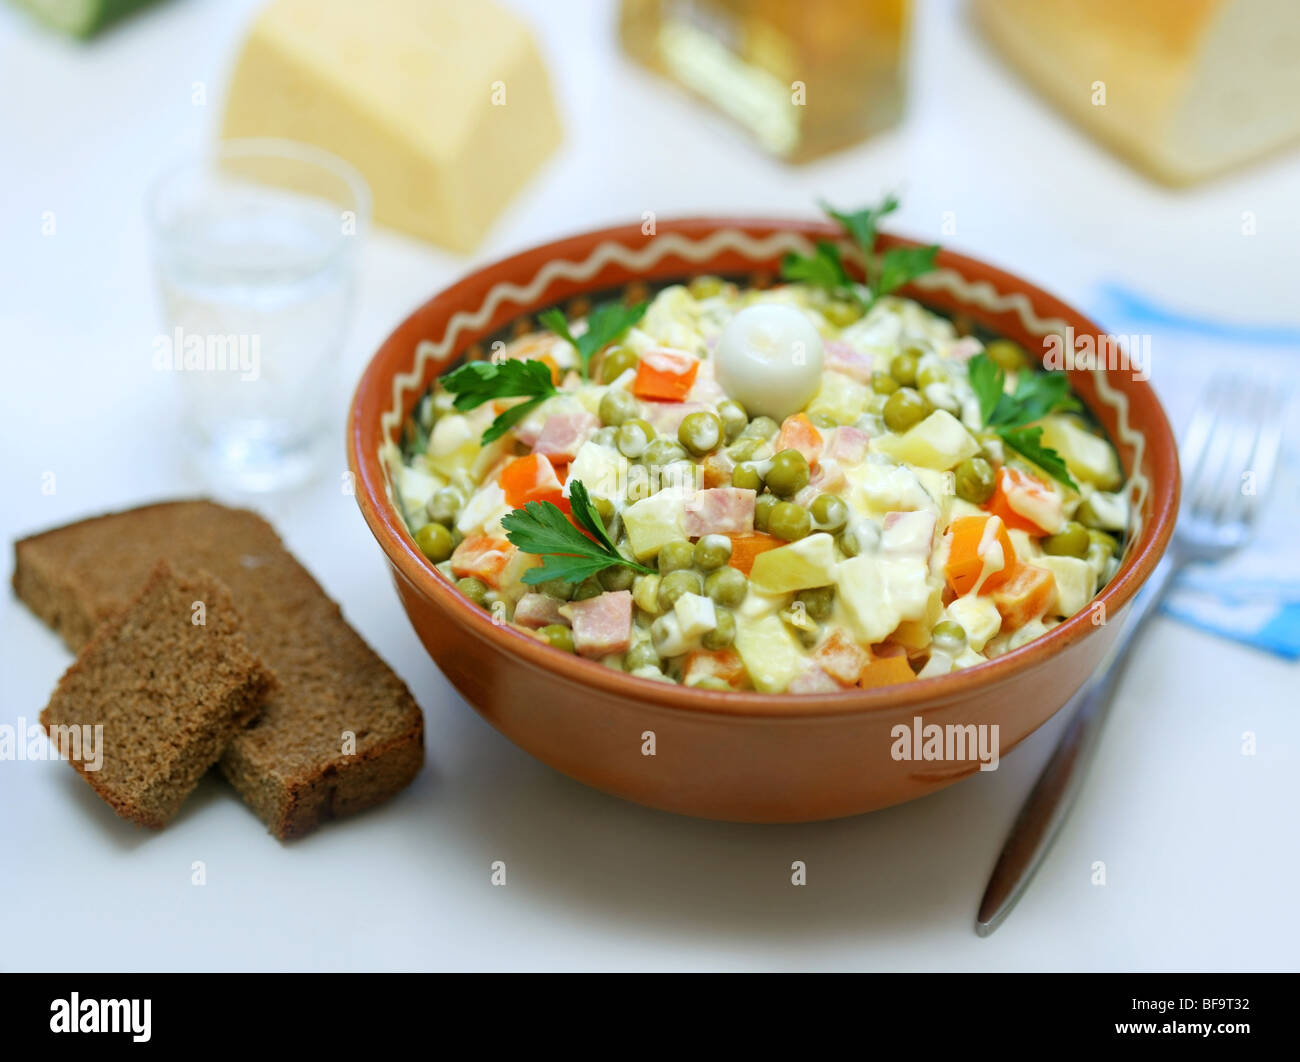 Homemade variant of Russian Salad and pieces of bread near - Stock Image